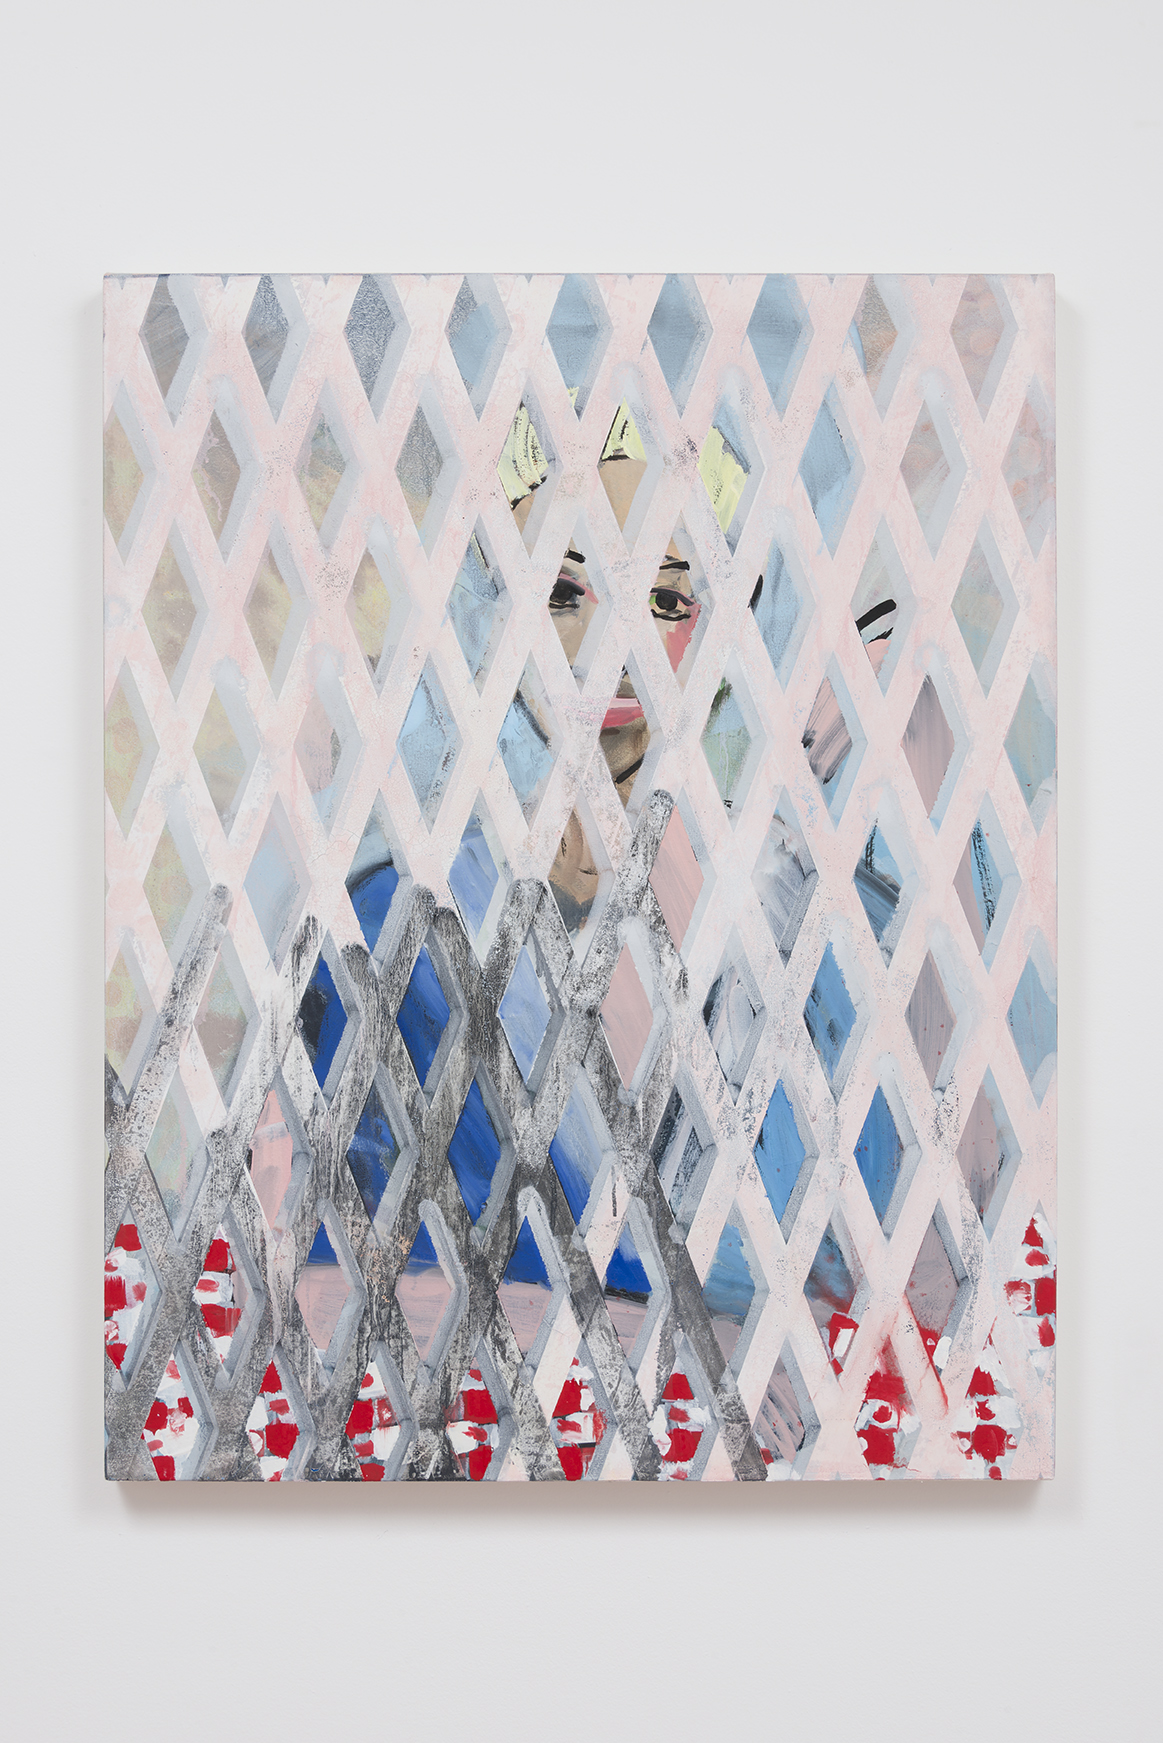 Becky Kolsrud - Woman with Gate (Shadow)